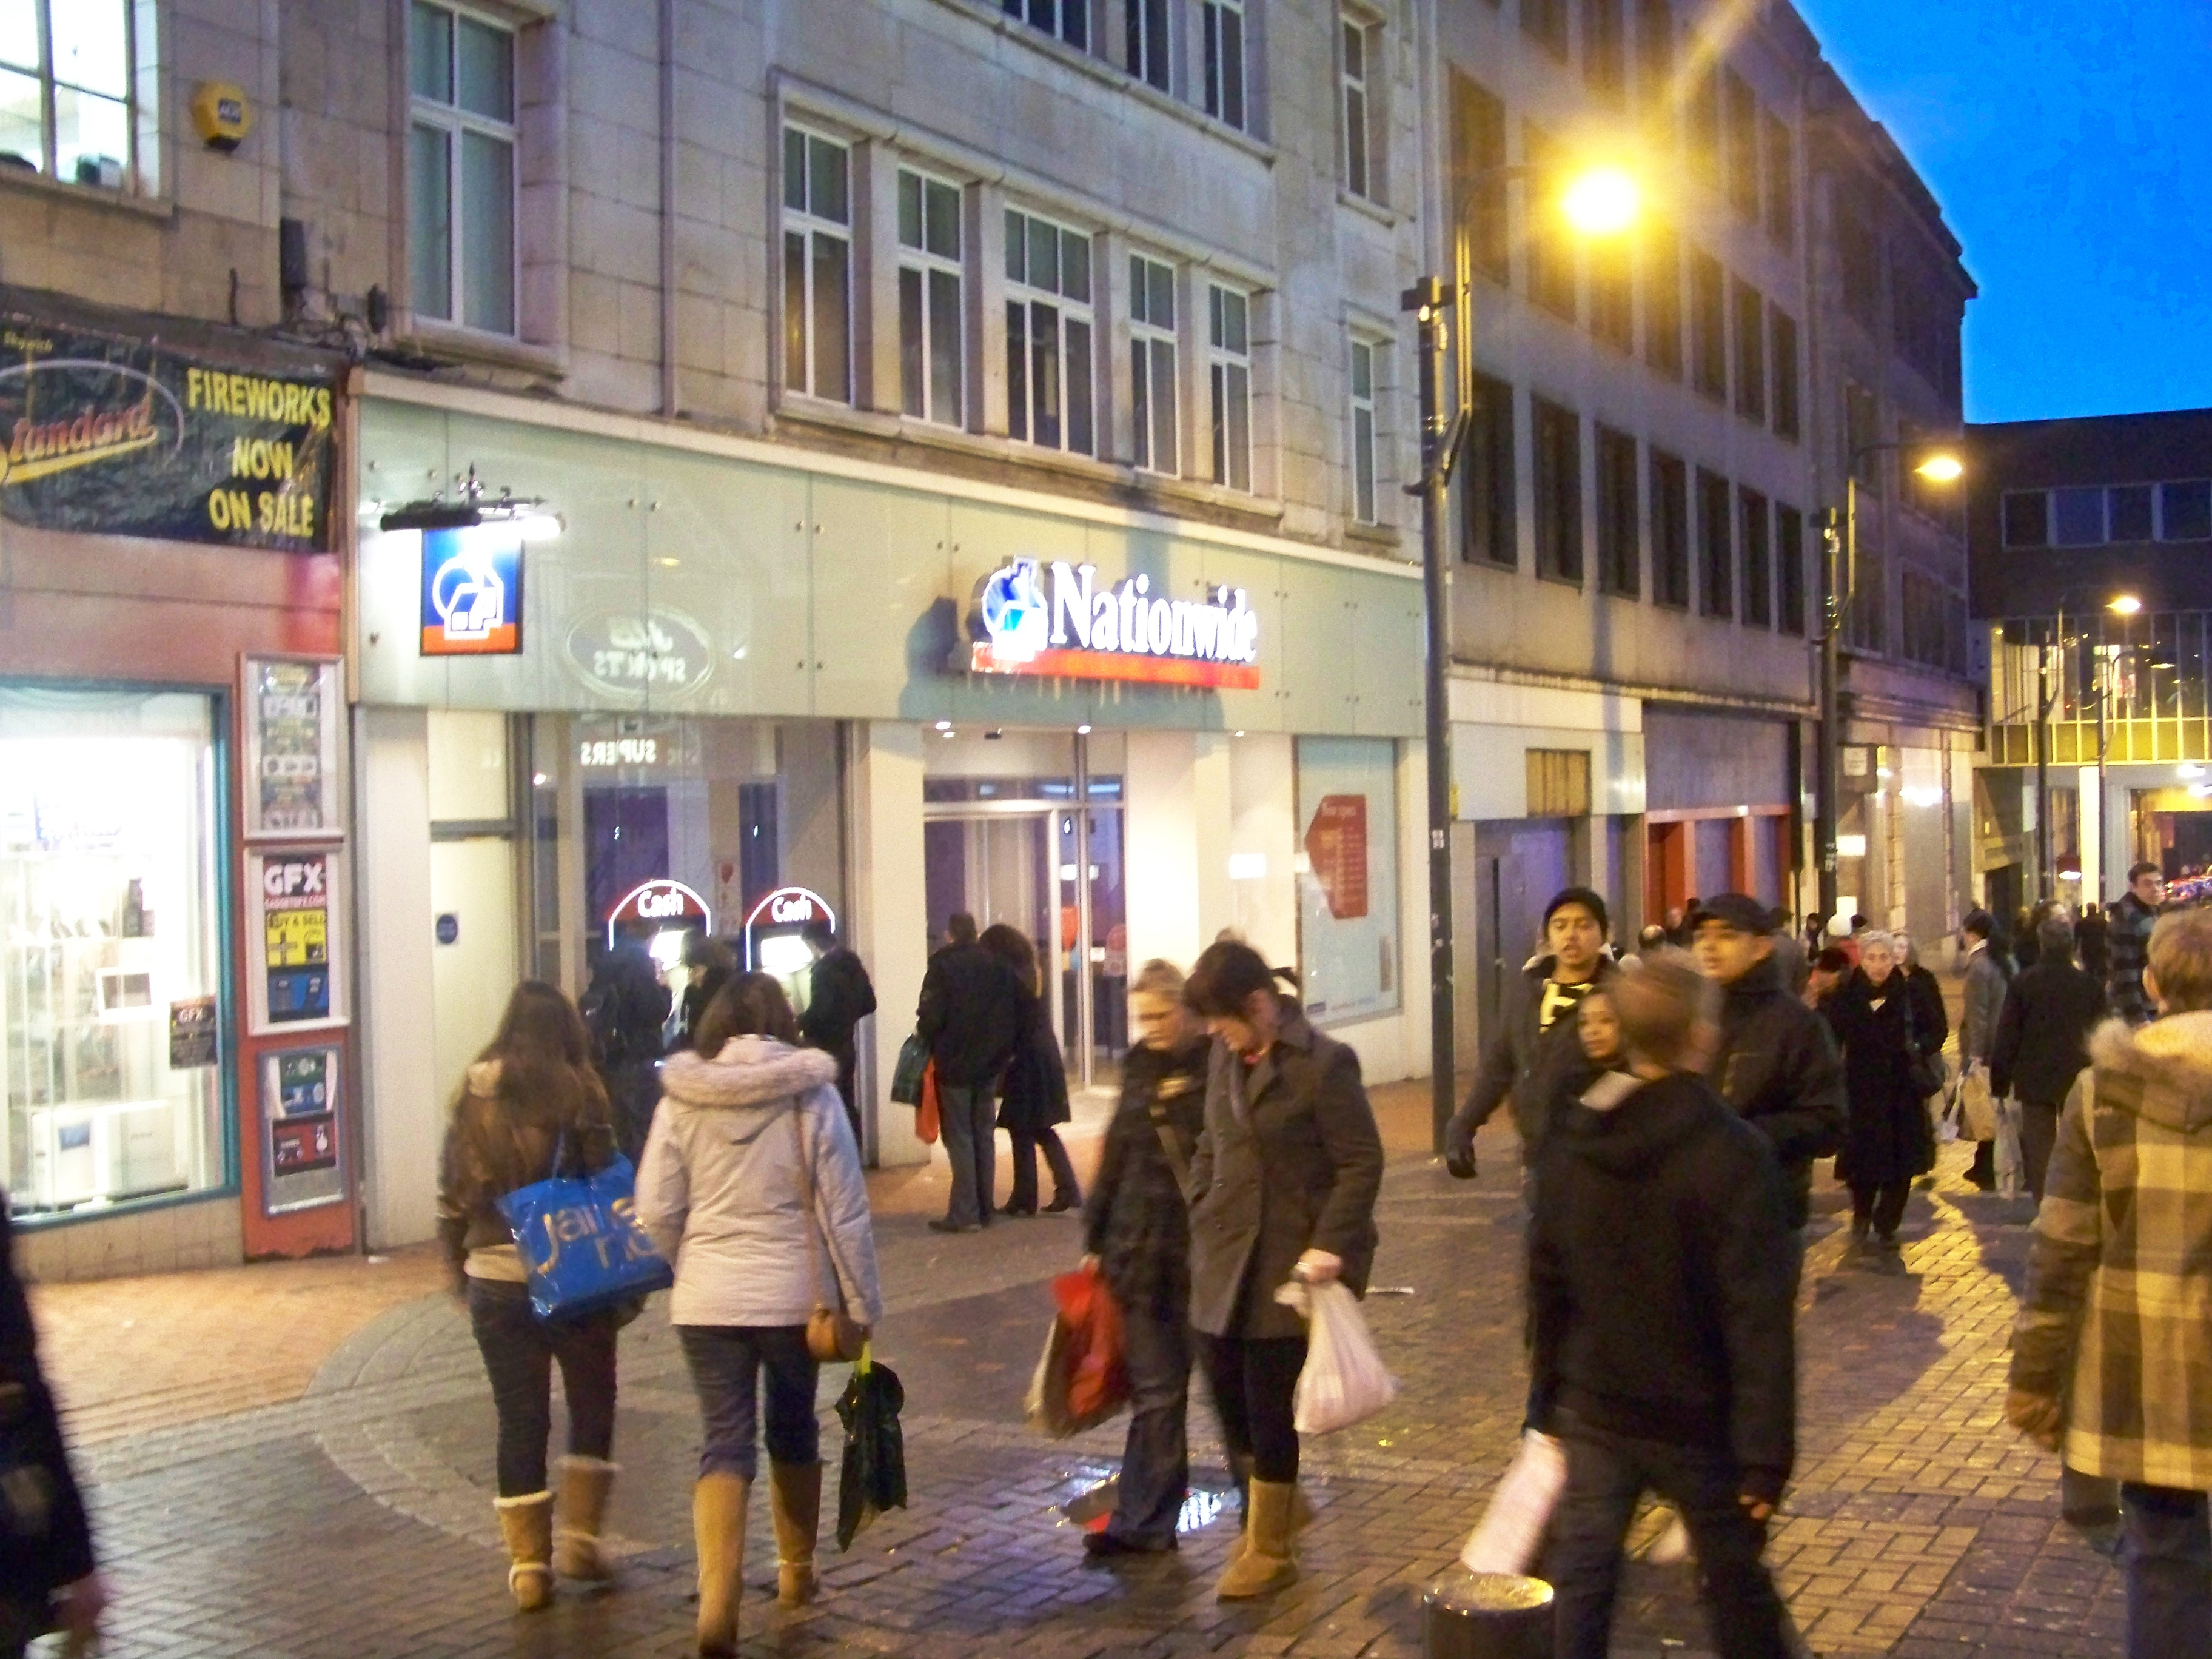 Nationwide Building Society St Albans Opening Hours